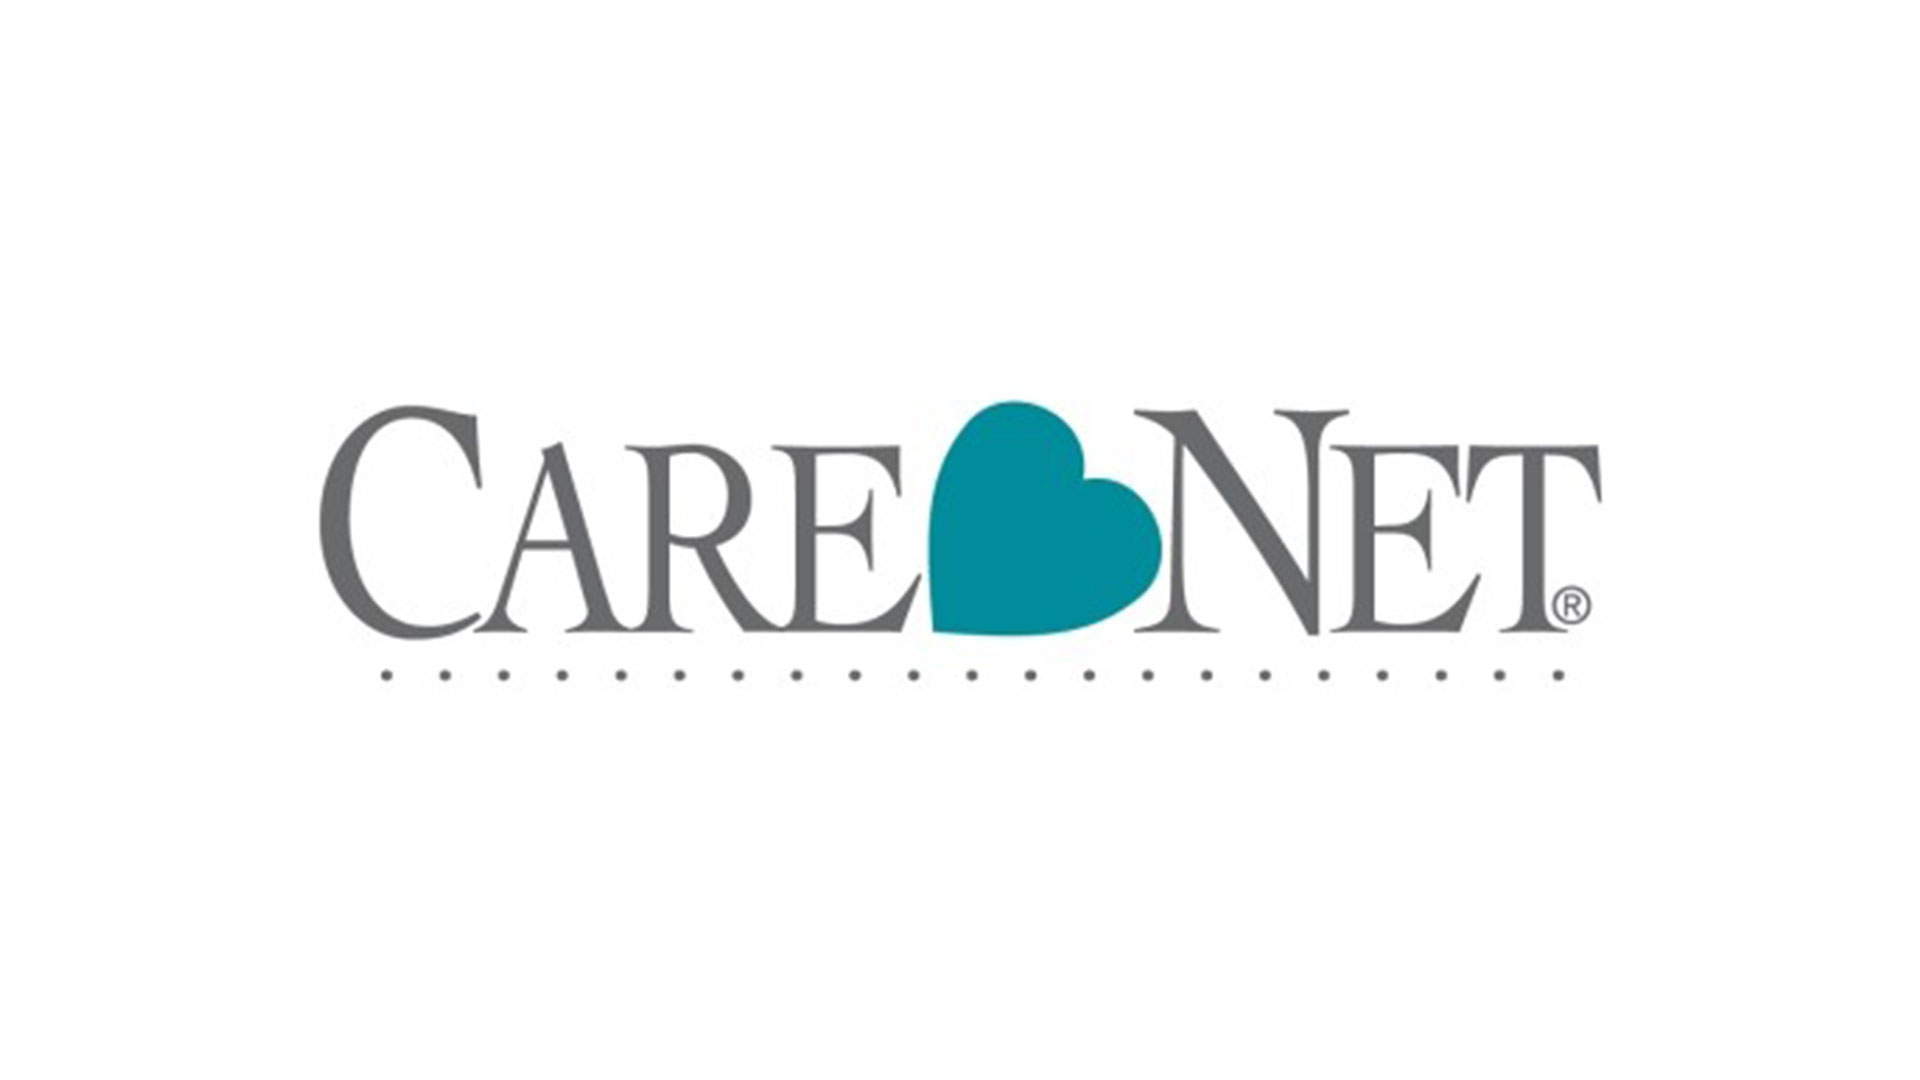 We partner with Care Net. Read on to learn more.